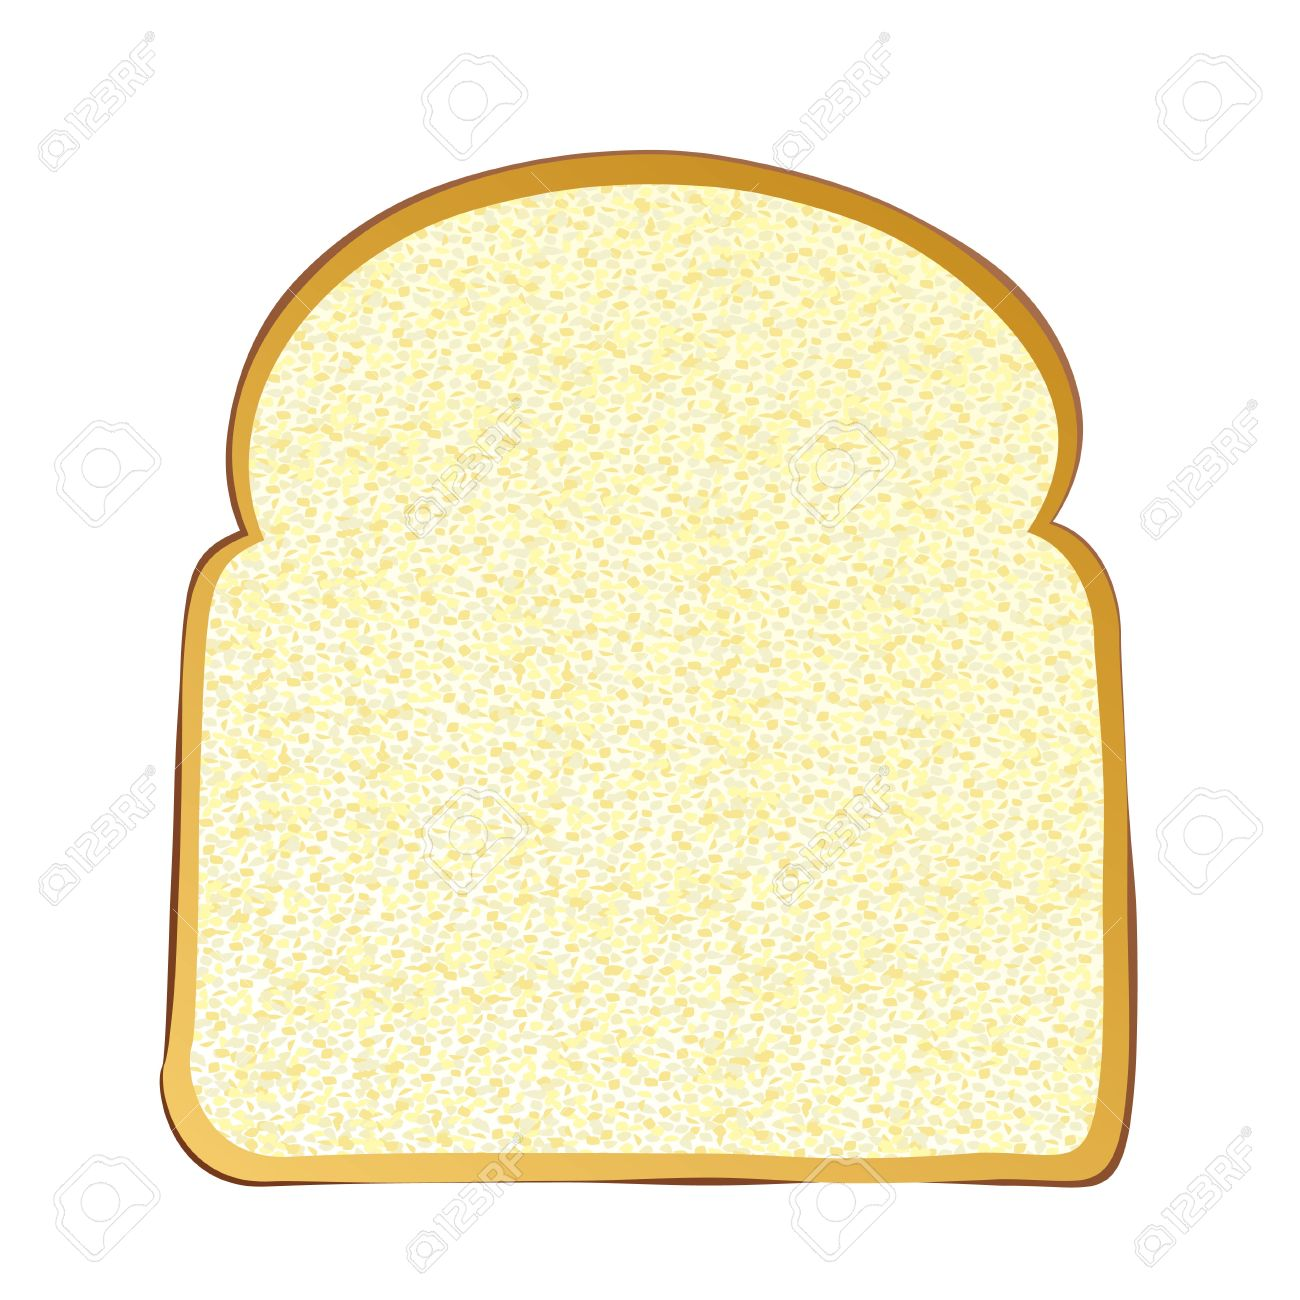 Single Slice Of Wholemeal White Bread With Crust Stock Photo.